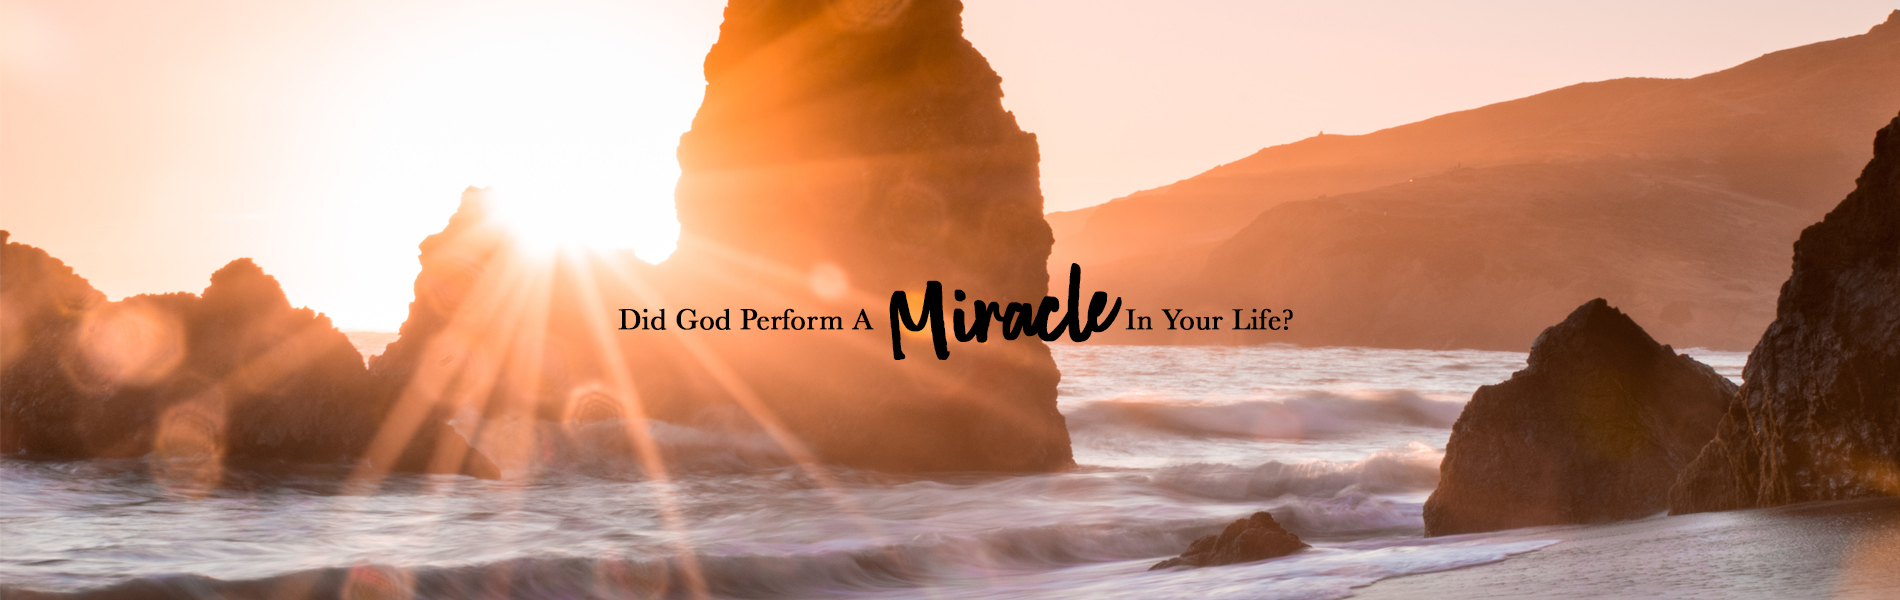 Did-God-Perform-A-Miracle-In-Your-Life New Creation TV   Broadcasting the Gospel of Jesus